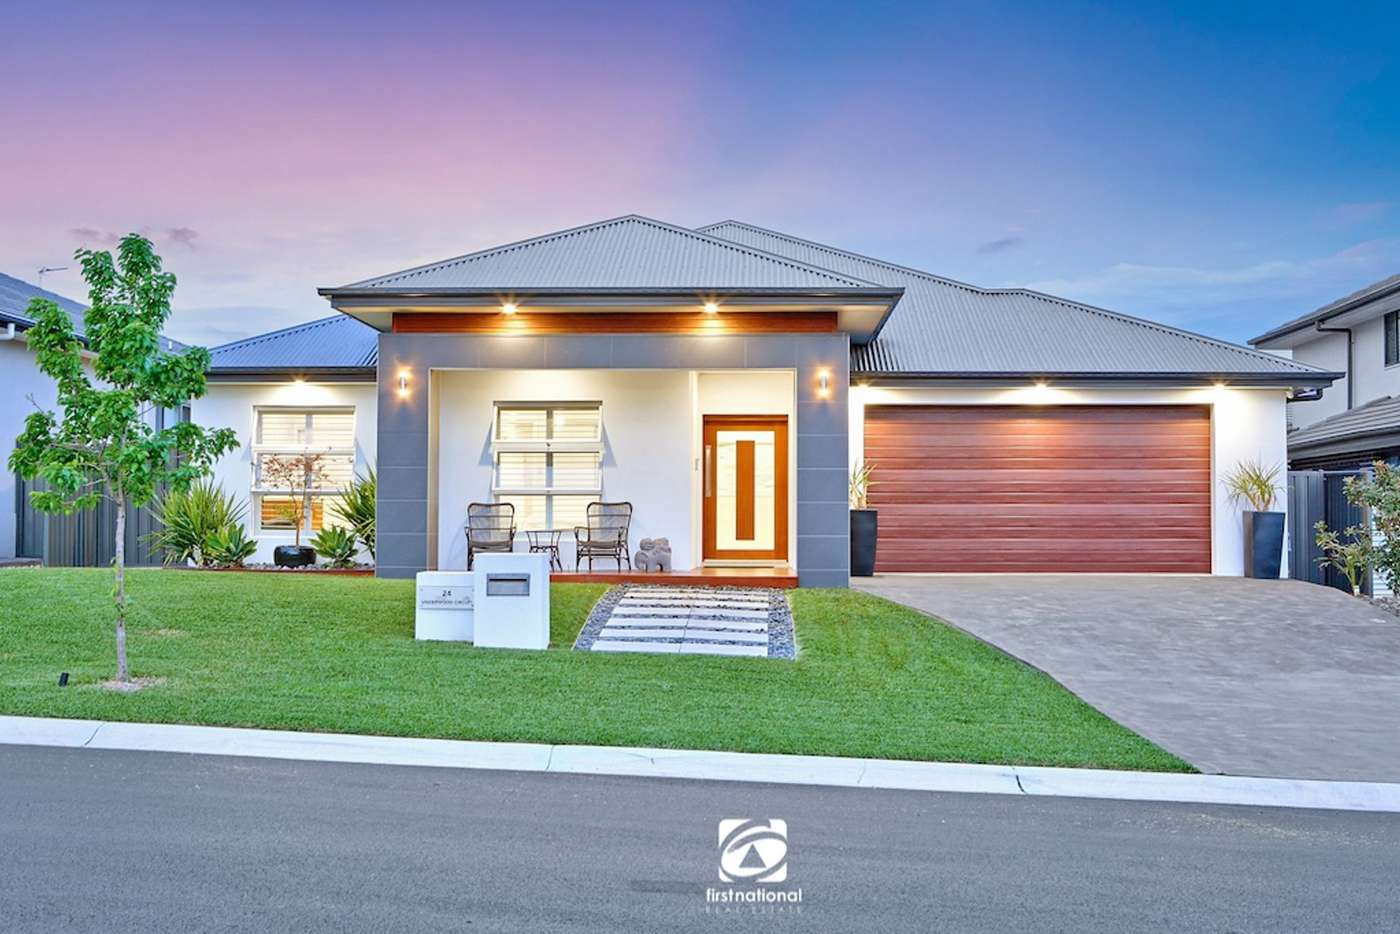 Main view of Homely house listing, 24 Underwood Circuit, Harrington Park NSW 2567